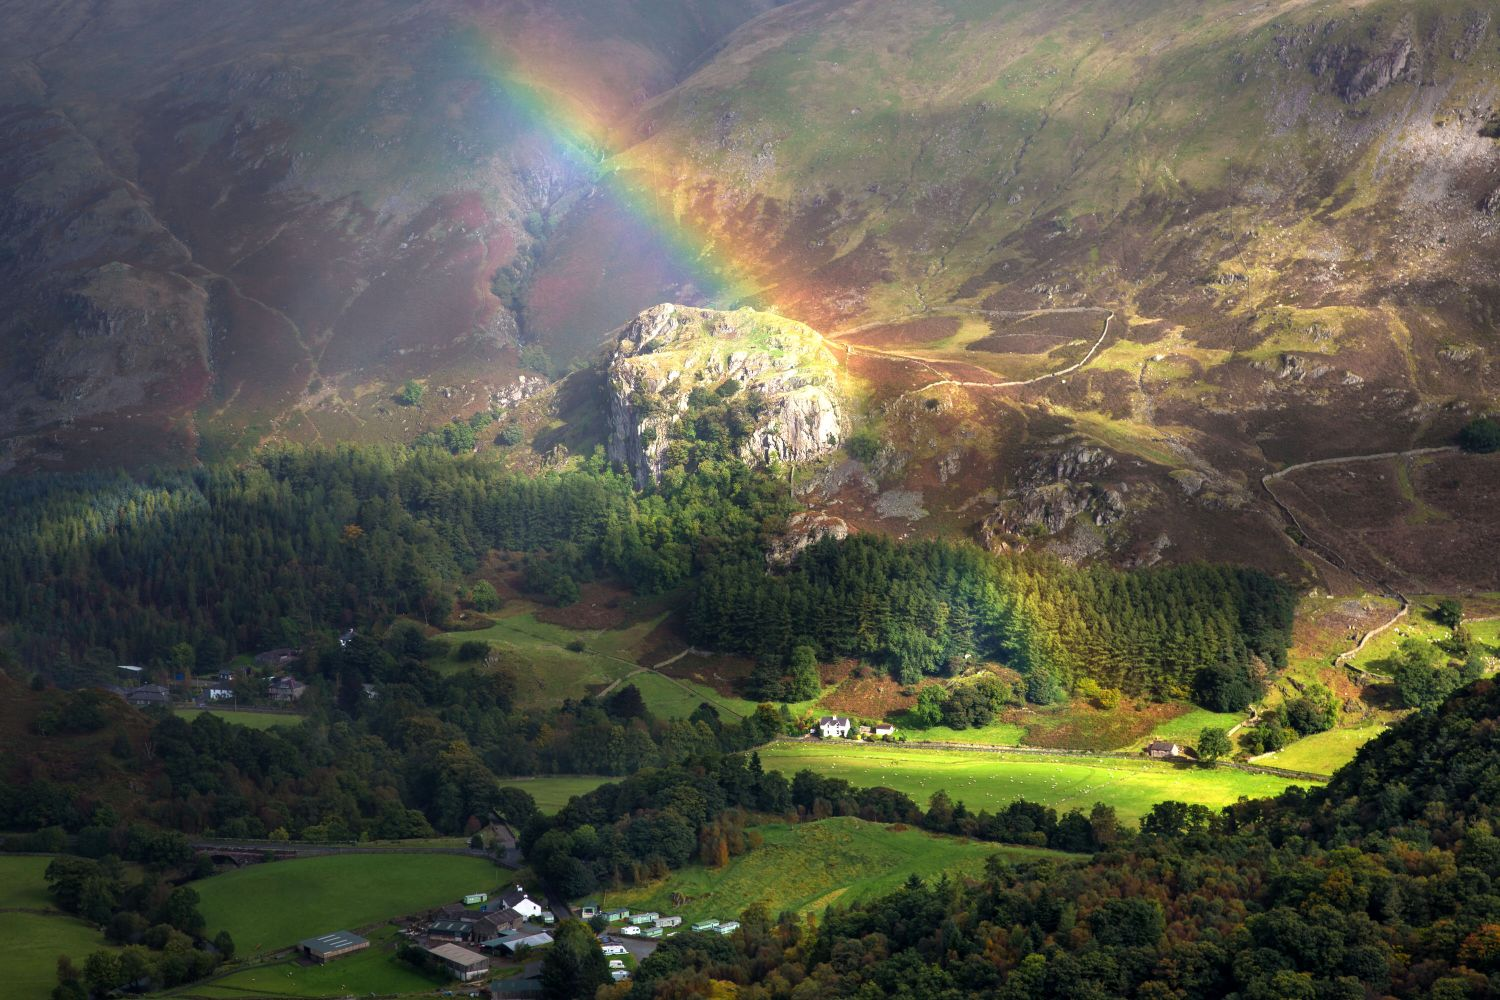 A beautiful rainbow ends over Castle Rock of Triermain in St Johns in the Vale in the English Lake District